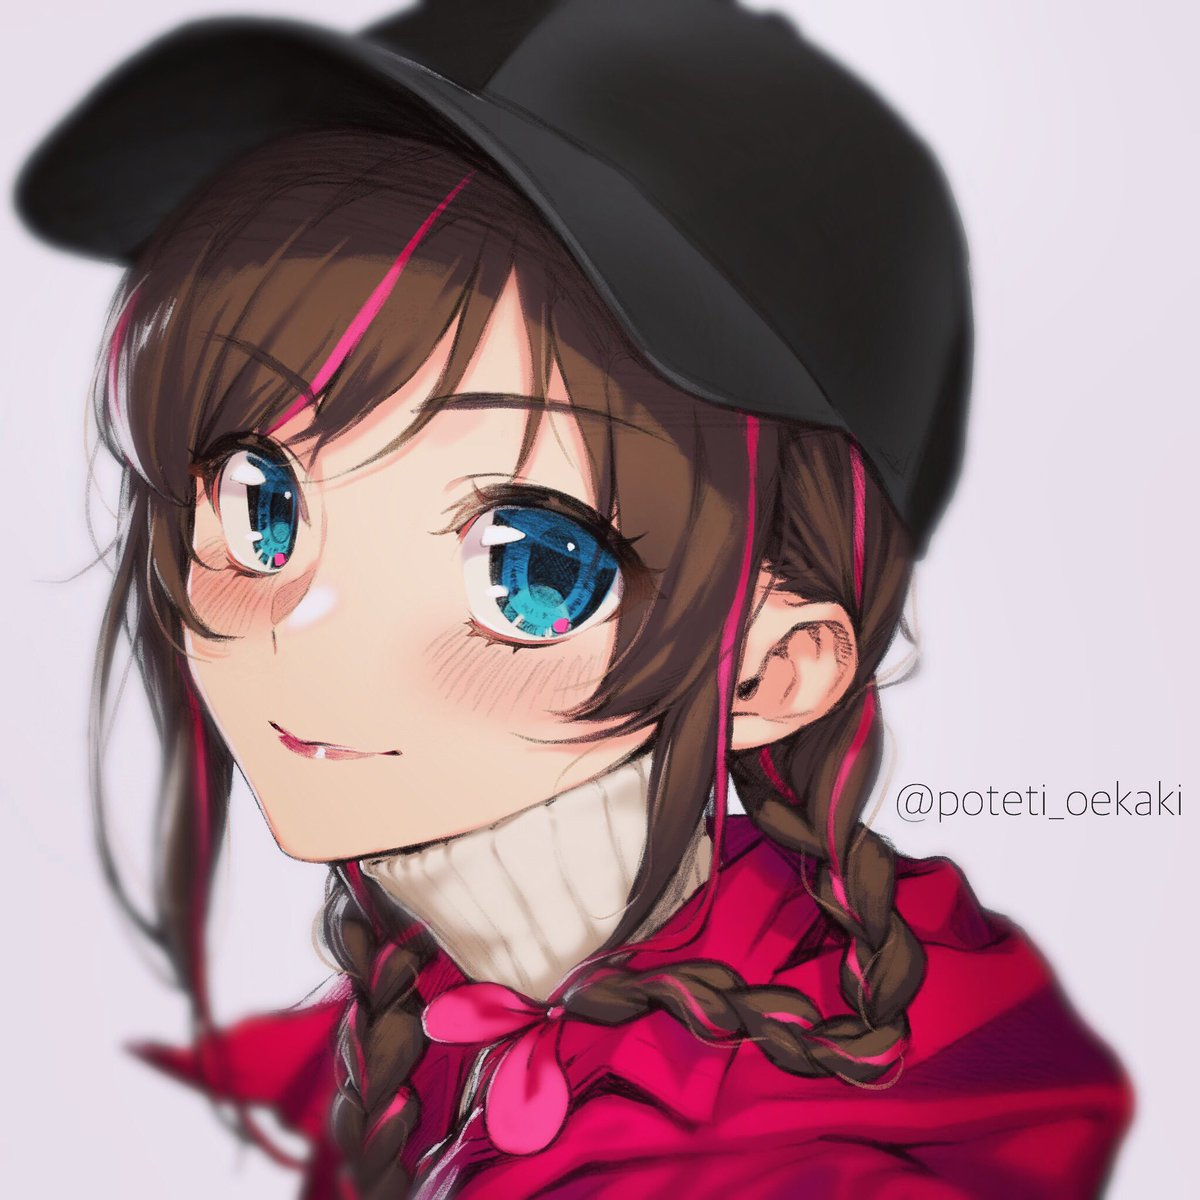 1girl a.i._channel alternate_costume alternate_hairstyle artist_name baseball_cap black_headwear blue_eyes blurry blush braid brown_hair closed_mouth depth_of_field eyebrows_visible_through_hair eyelashes grey_background hat highres jacket kizuna_ai lips long_hair looking_at_viewer multicolored_hair pink_hair portrait poteti red_jacket ribbed_sweater simple_background smile solo streaked_hair sweater turtleneck turtleneck_sweater twin_braids twitter_username two-tone_hair virtual_youtuber